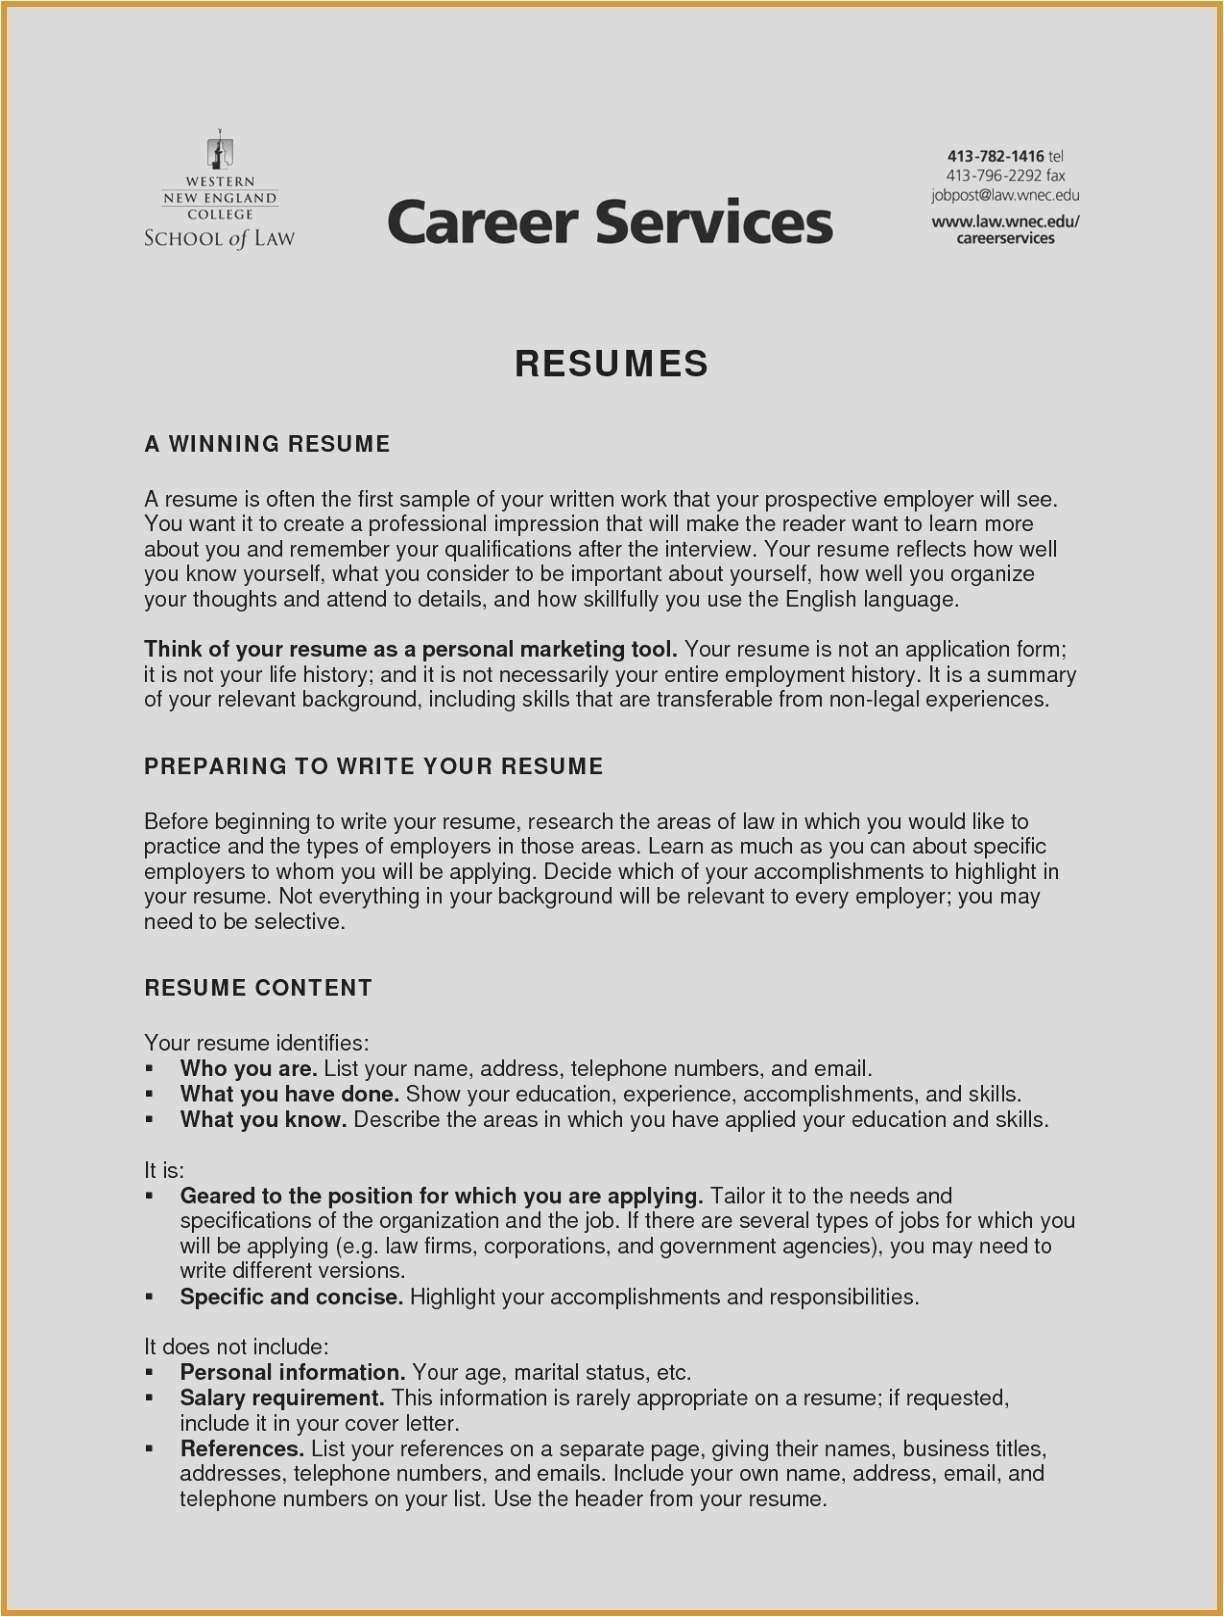 Resume Statement Examples Resume Examples Professional Resume